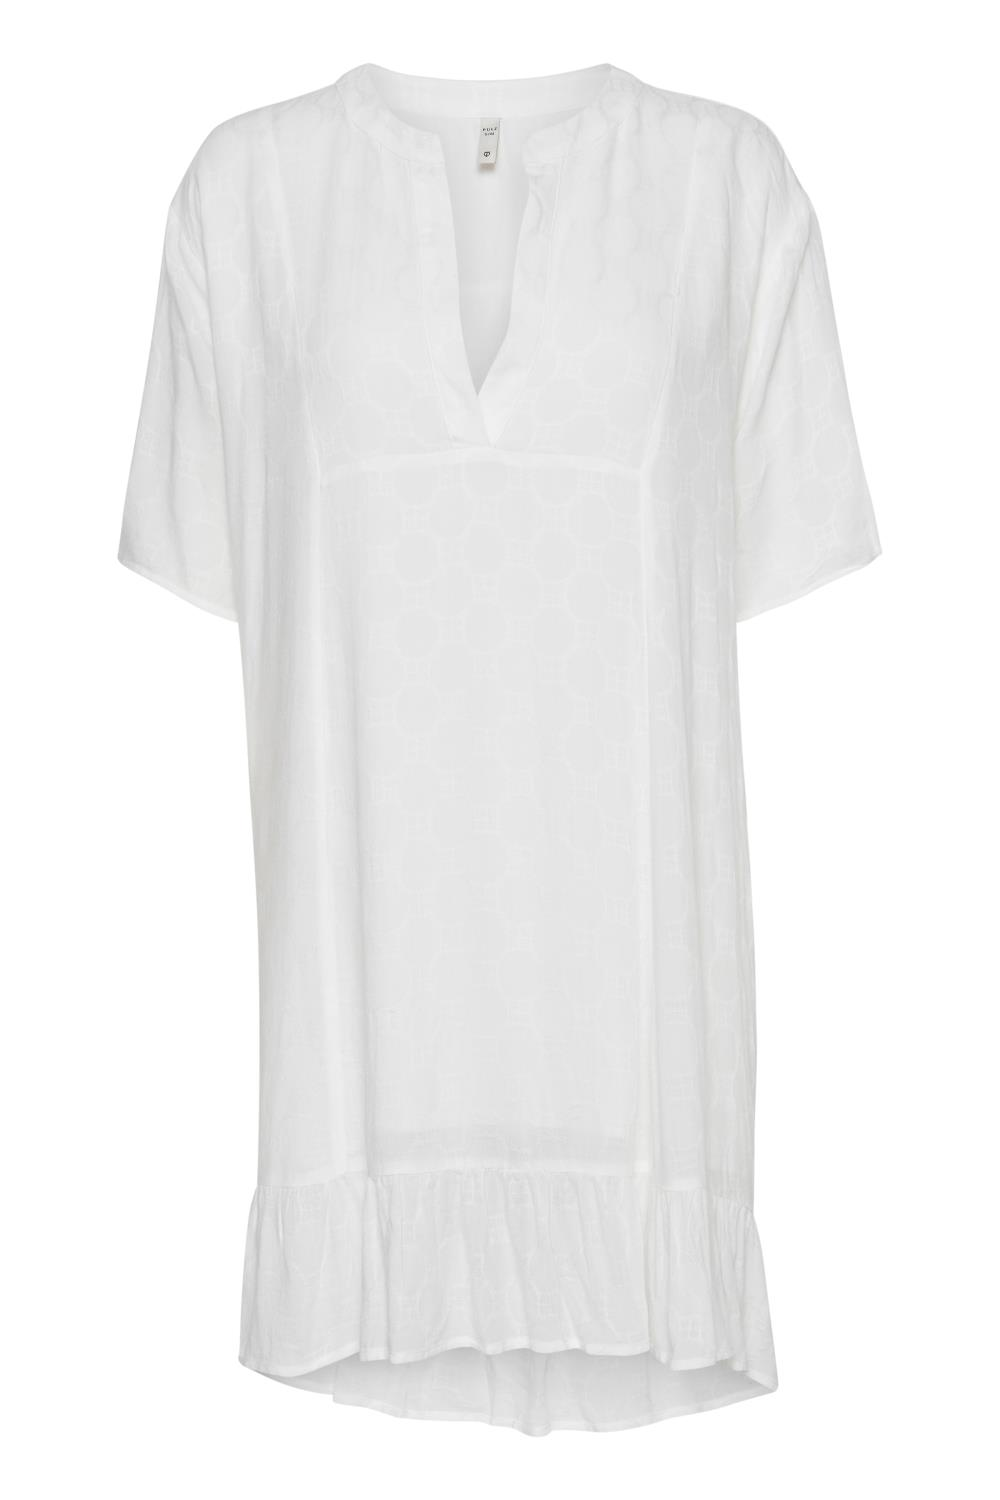 Pulz Lottie Tunic, Pearled Ivory